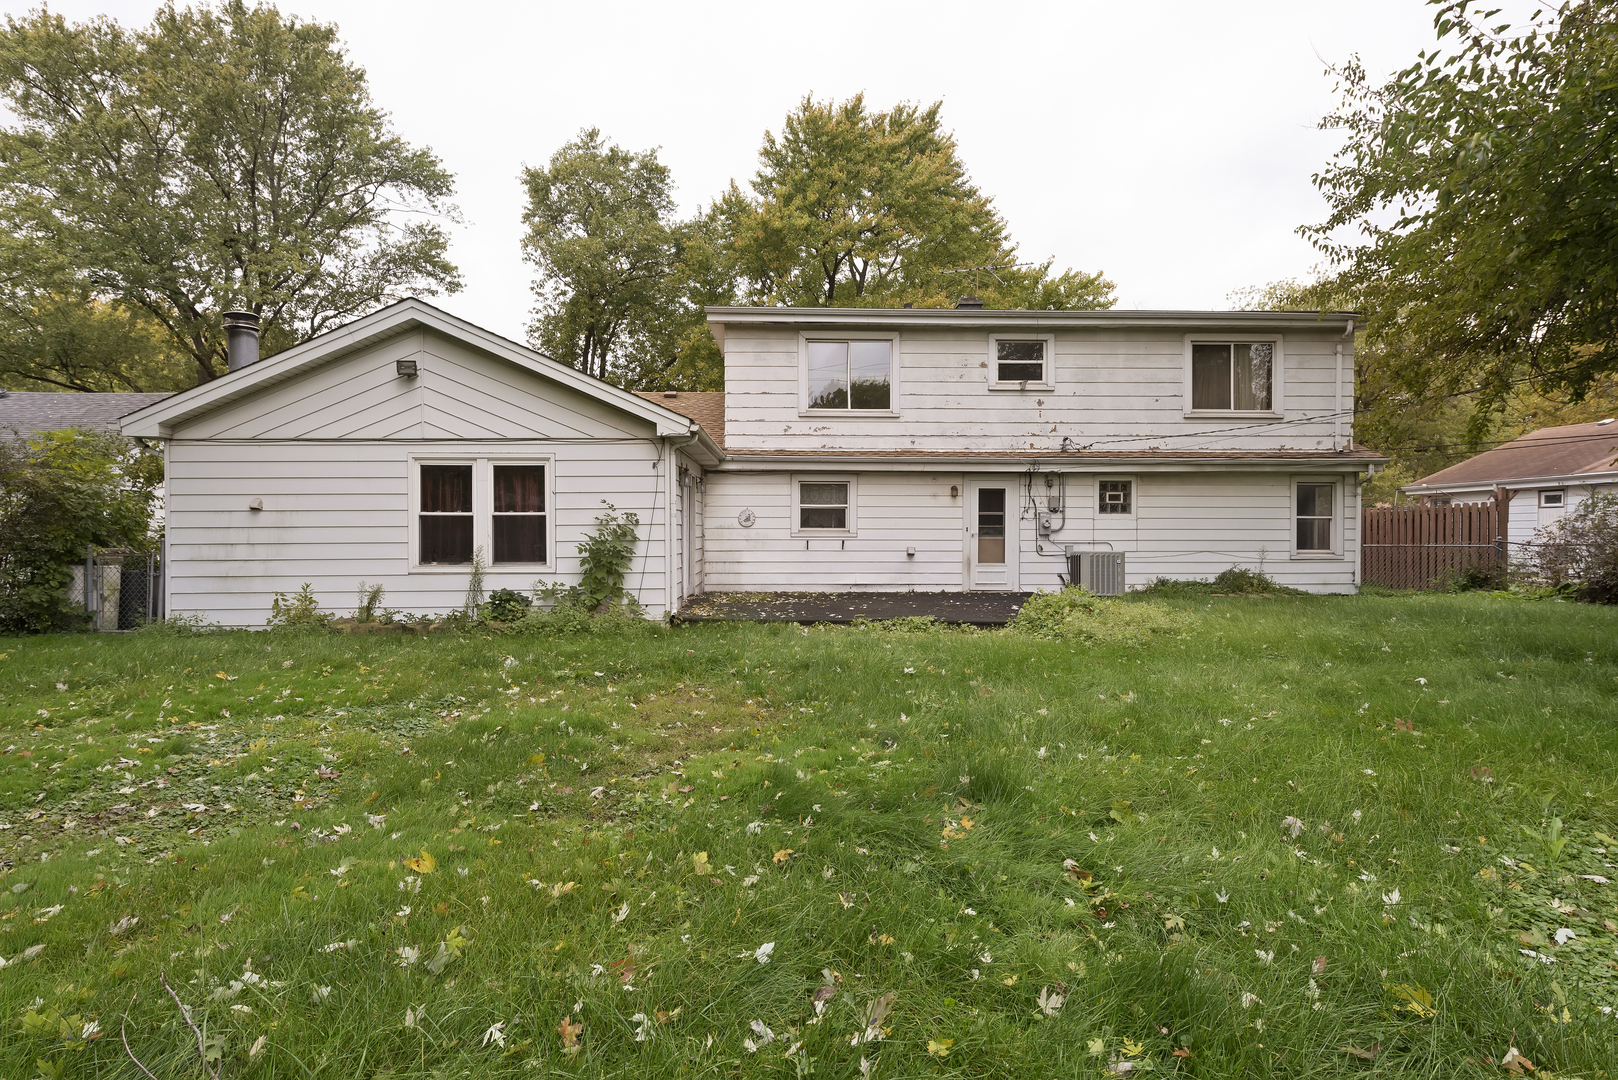 11507 South Neenah, Worth, Illinois, 60482